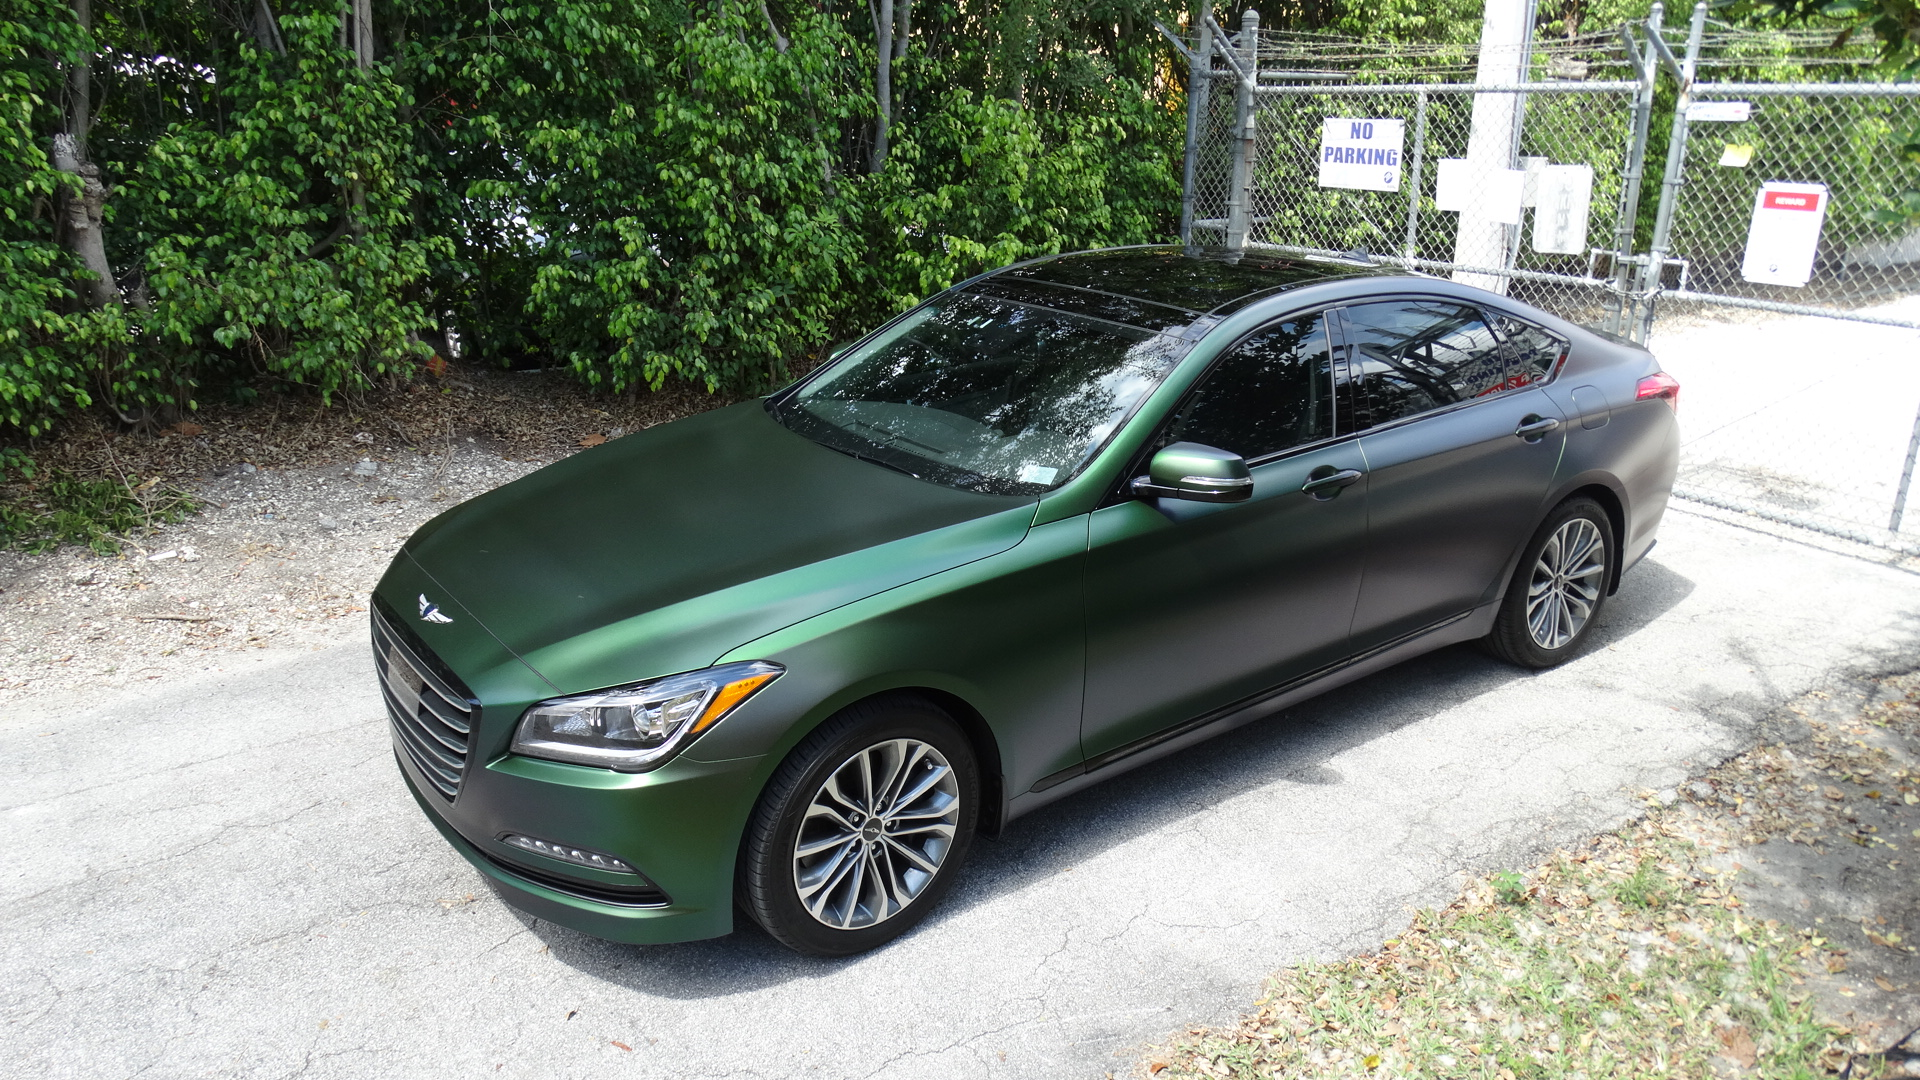 Car Detailing Prices >> 2017 Genesis G80 Complete Color Makeover At First Class Autosports In | MIAMI CAR WRAPS ...